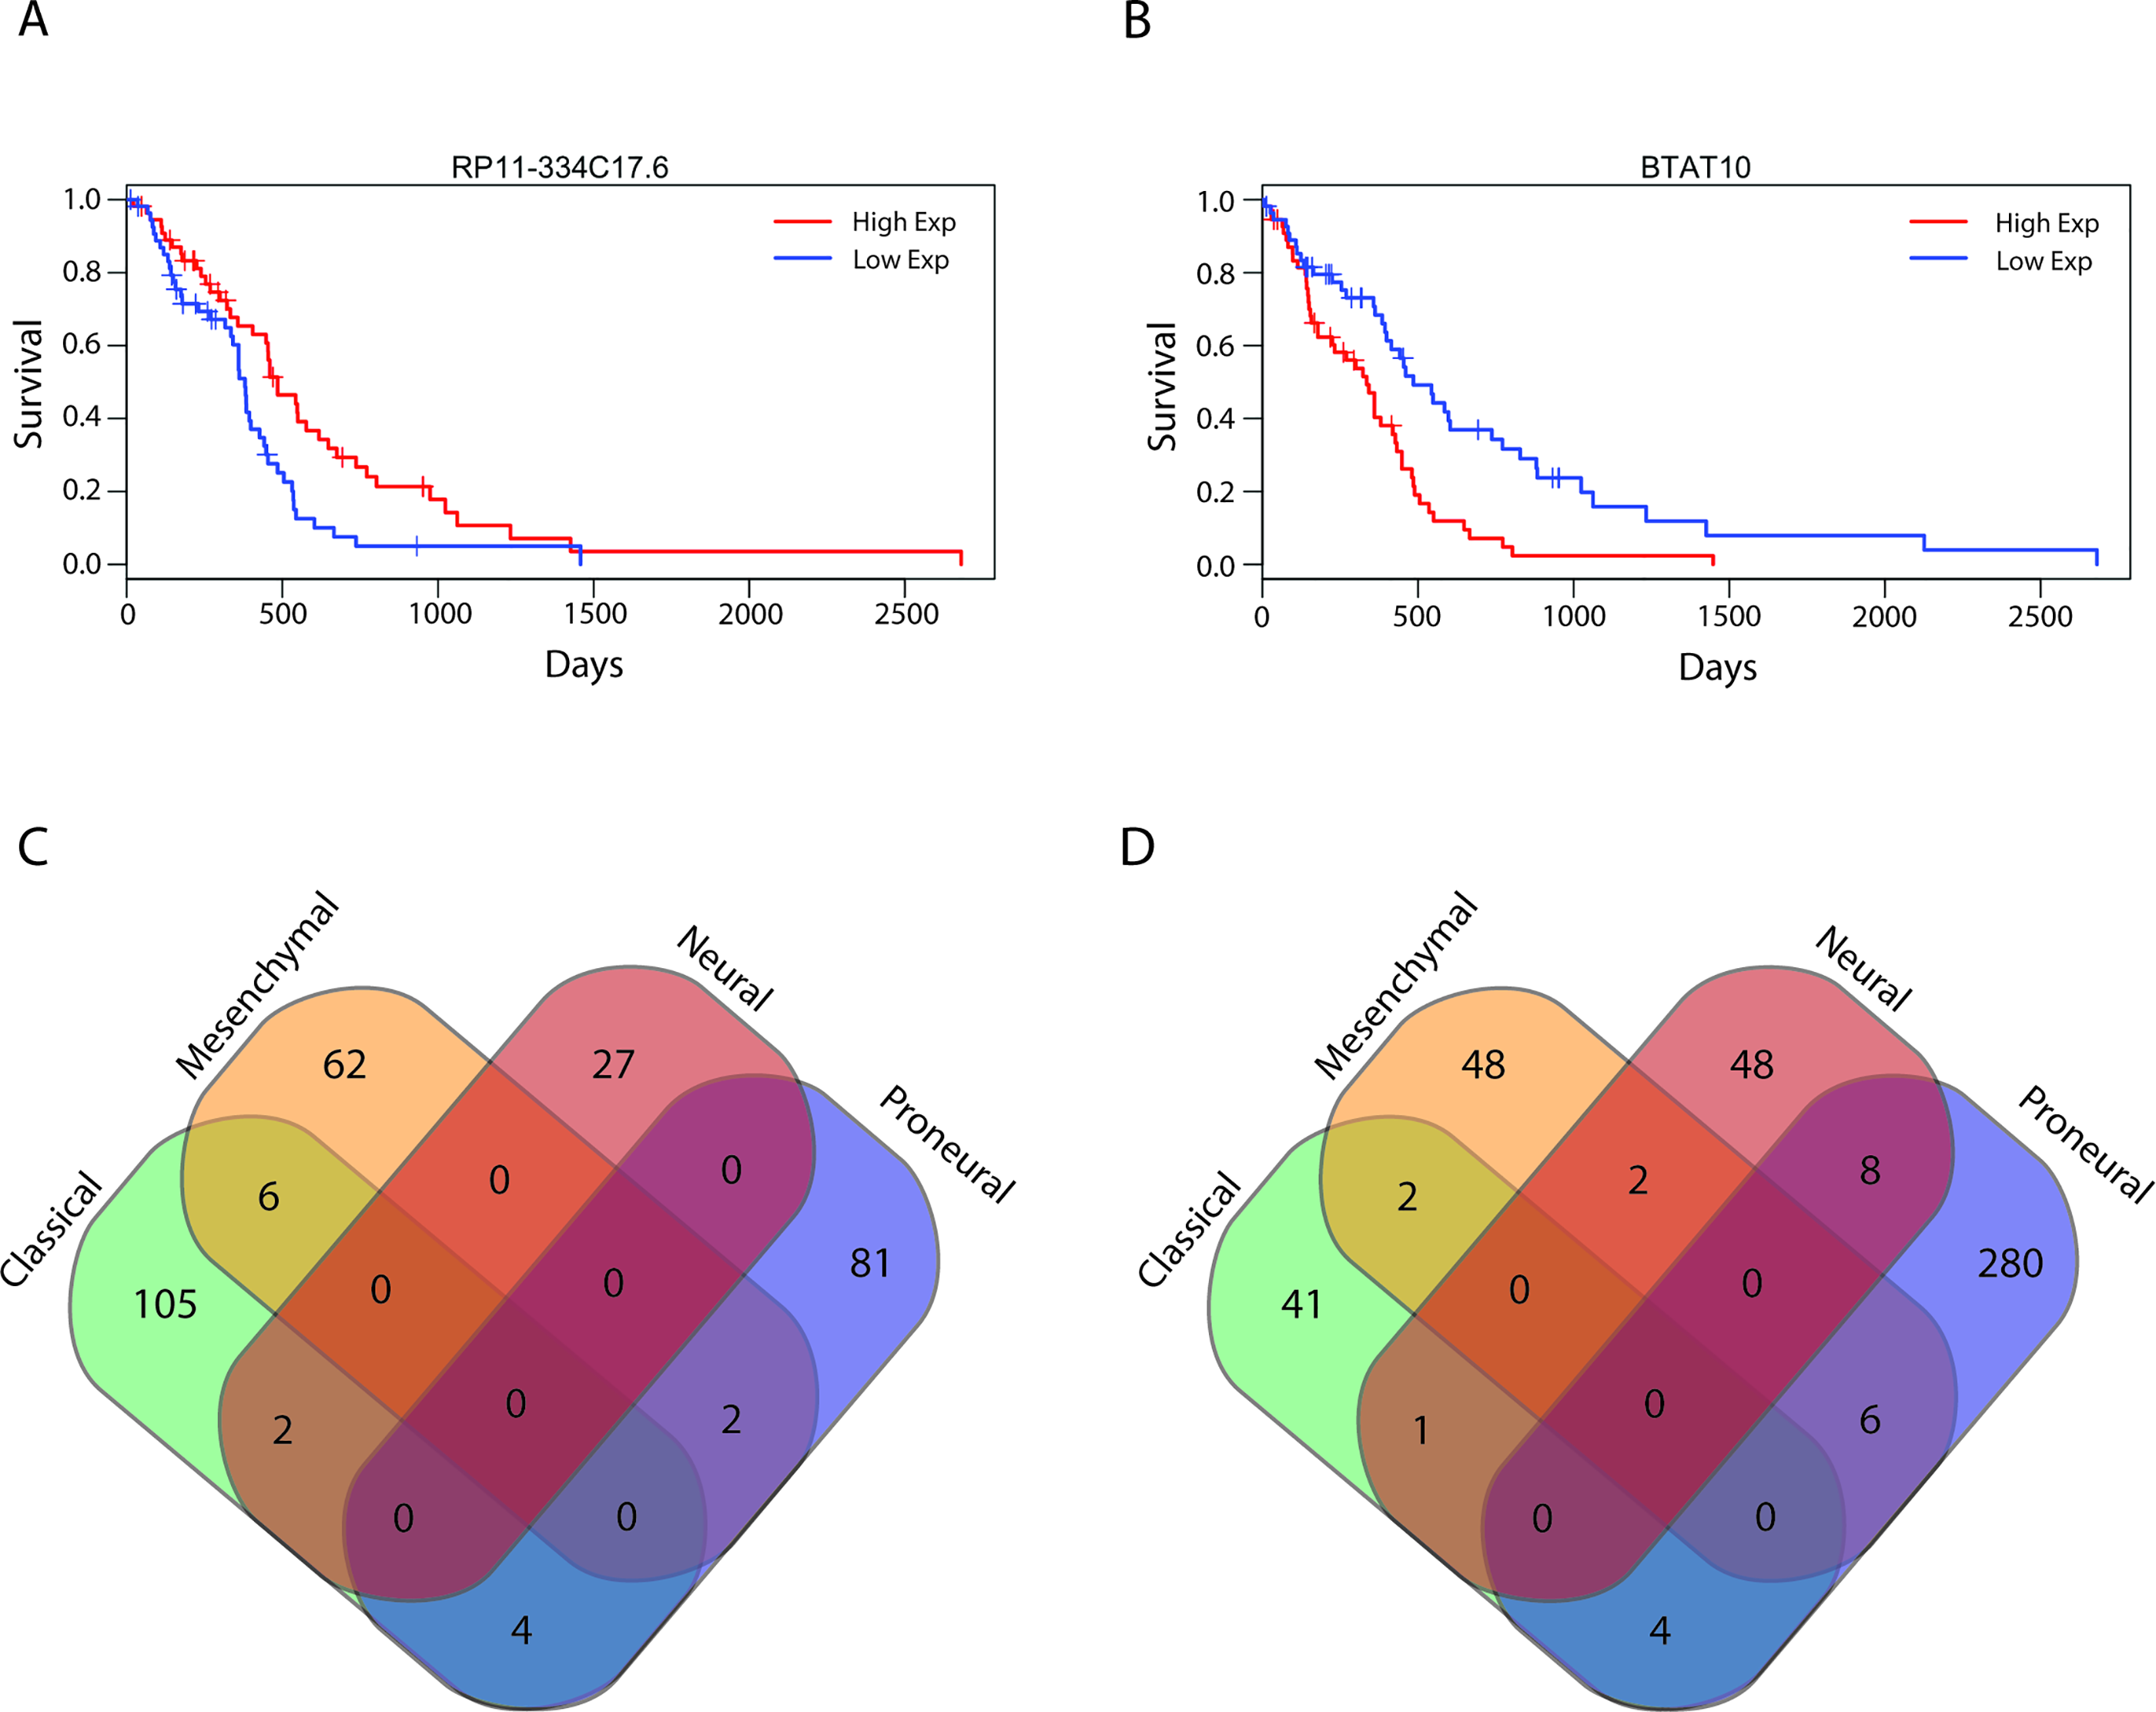 Survival-associated lncRNAs in GBMs and GBM subtypes.